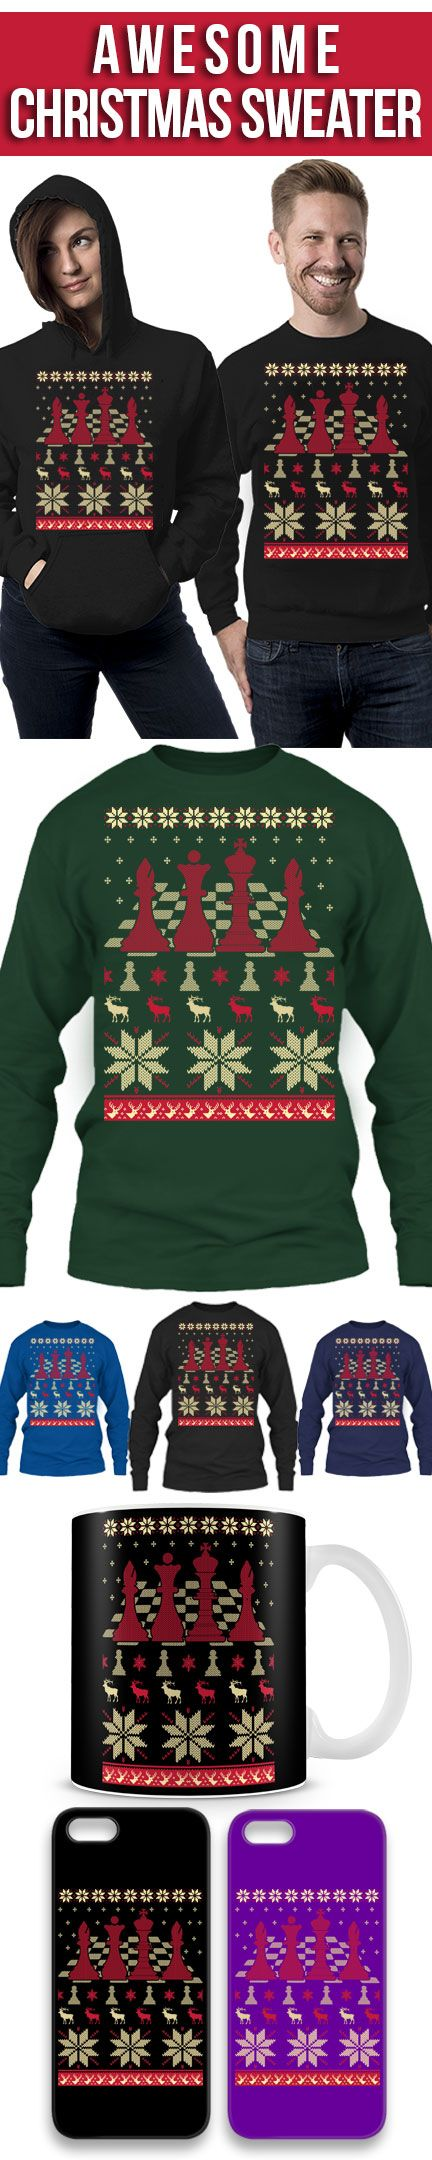 Chess Ugly Christmas Sweater! Click The Image To Buy It Now or Tag Someone You Want To Buy This For. #chess